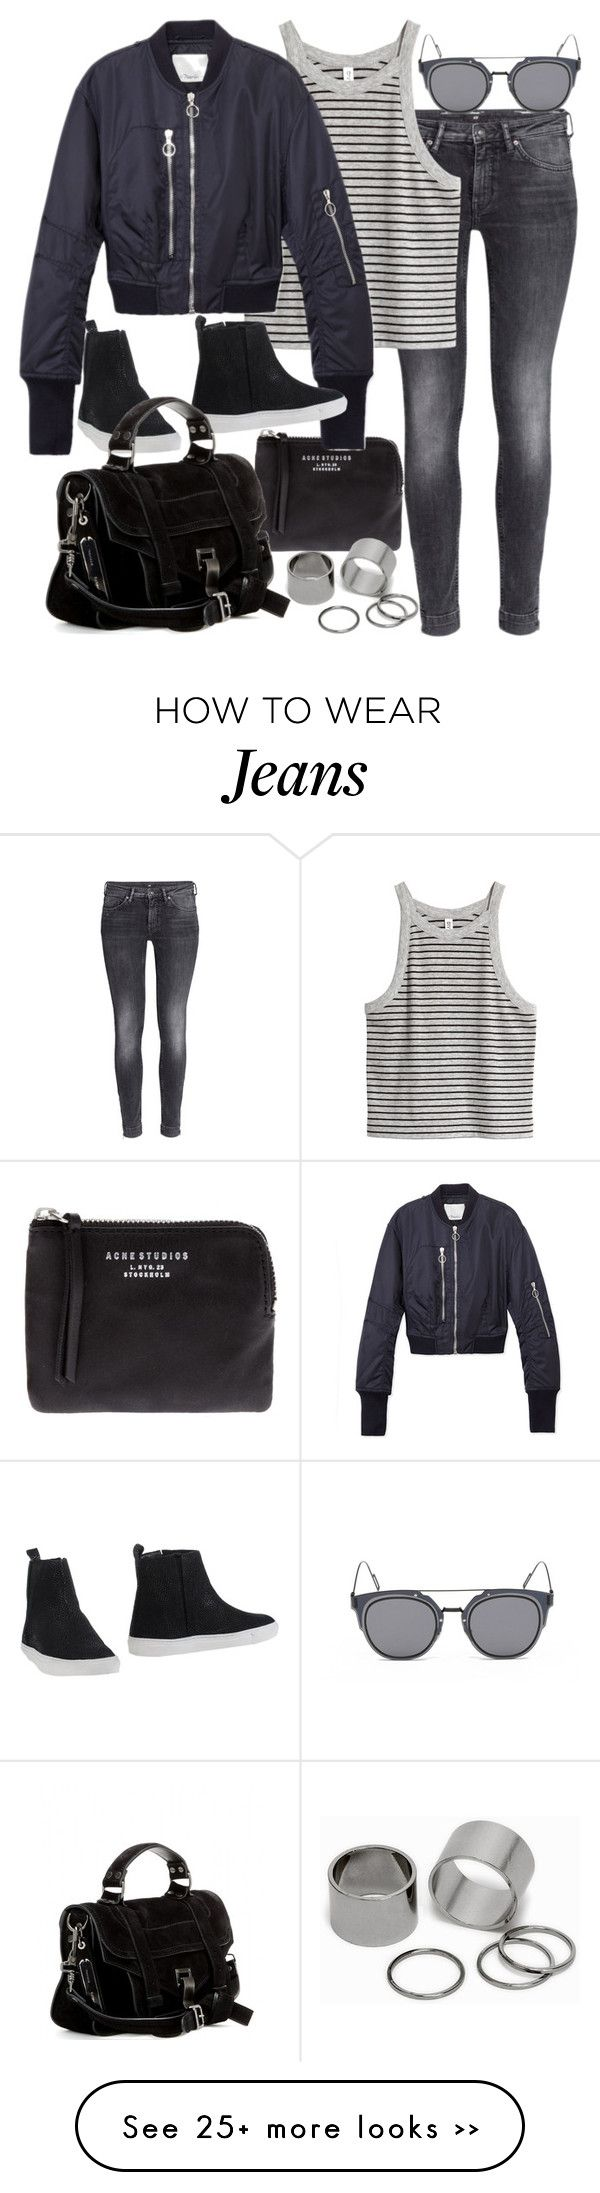 """Untitled #18635"" by florencia95 on Polyvore"